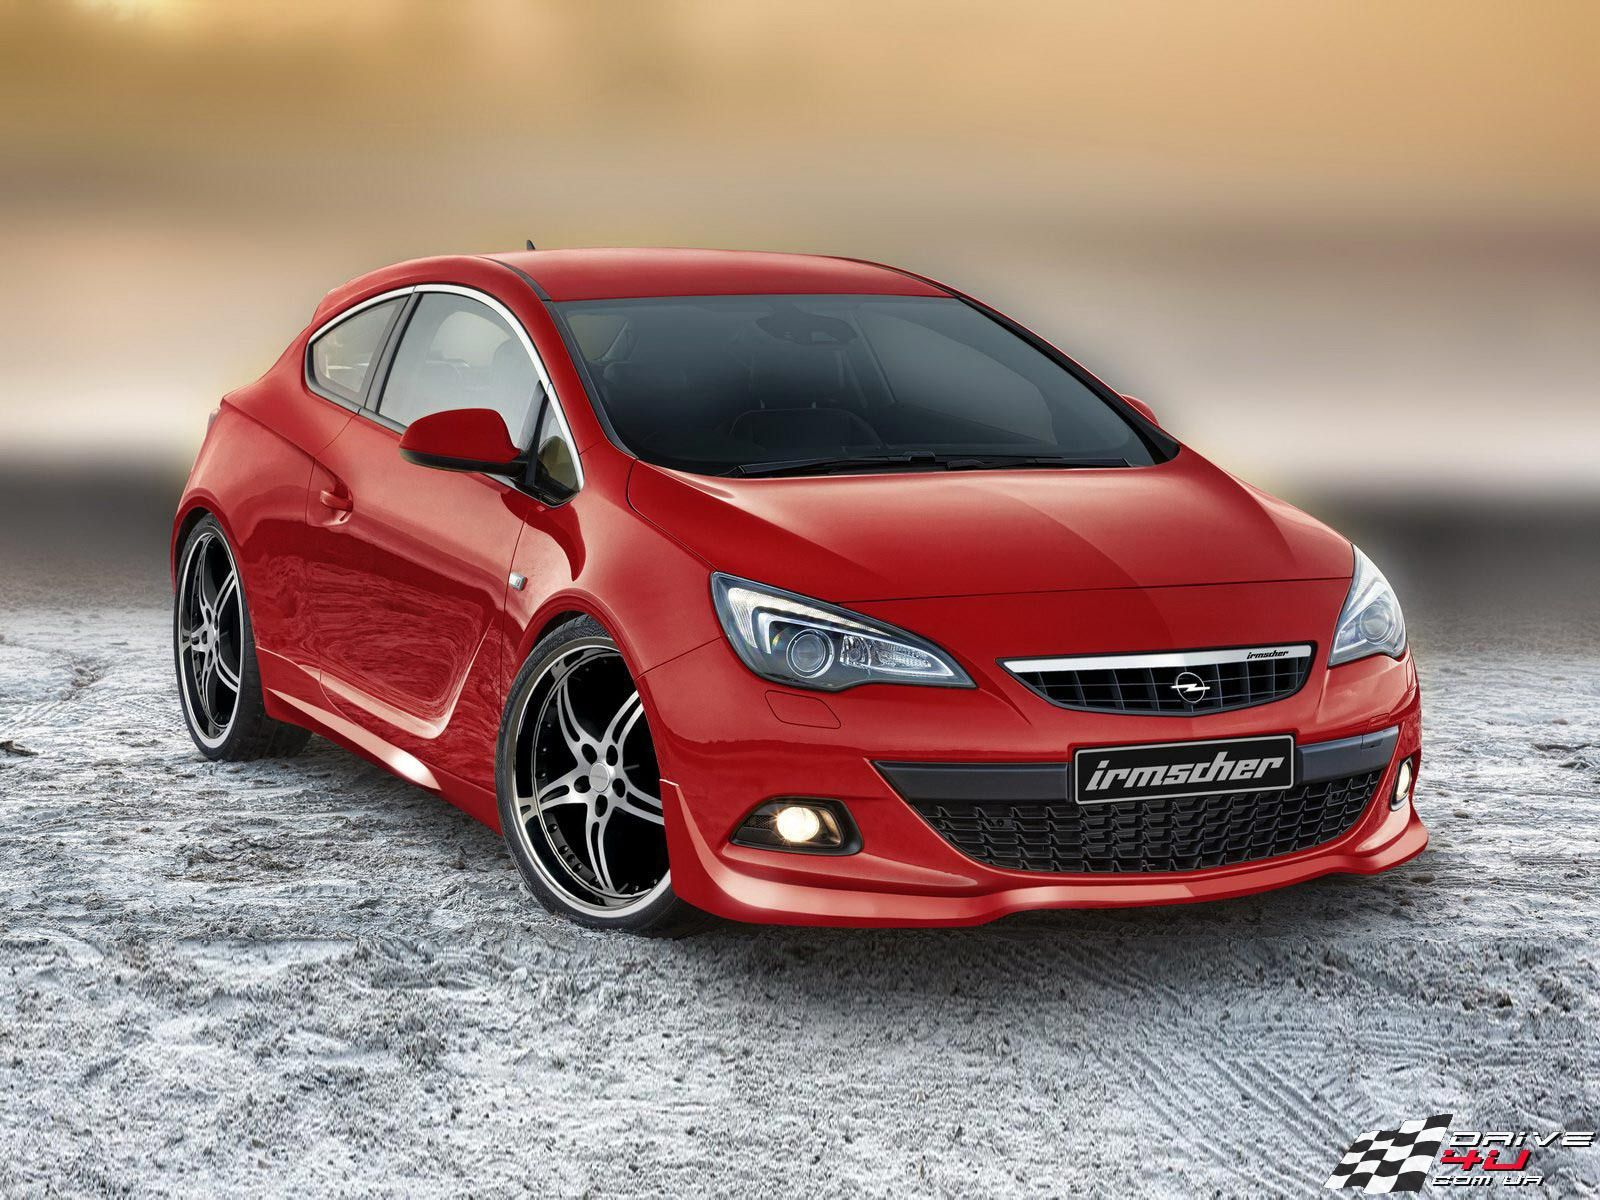 New car Opel Astra GTC 2014 wallpapers and images - wallpapers ...